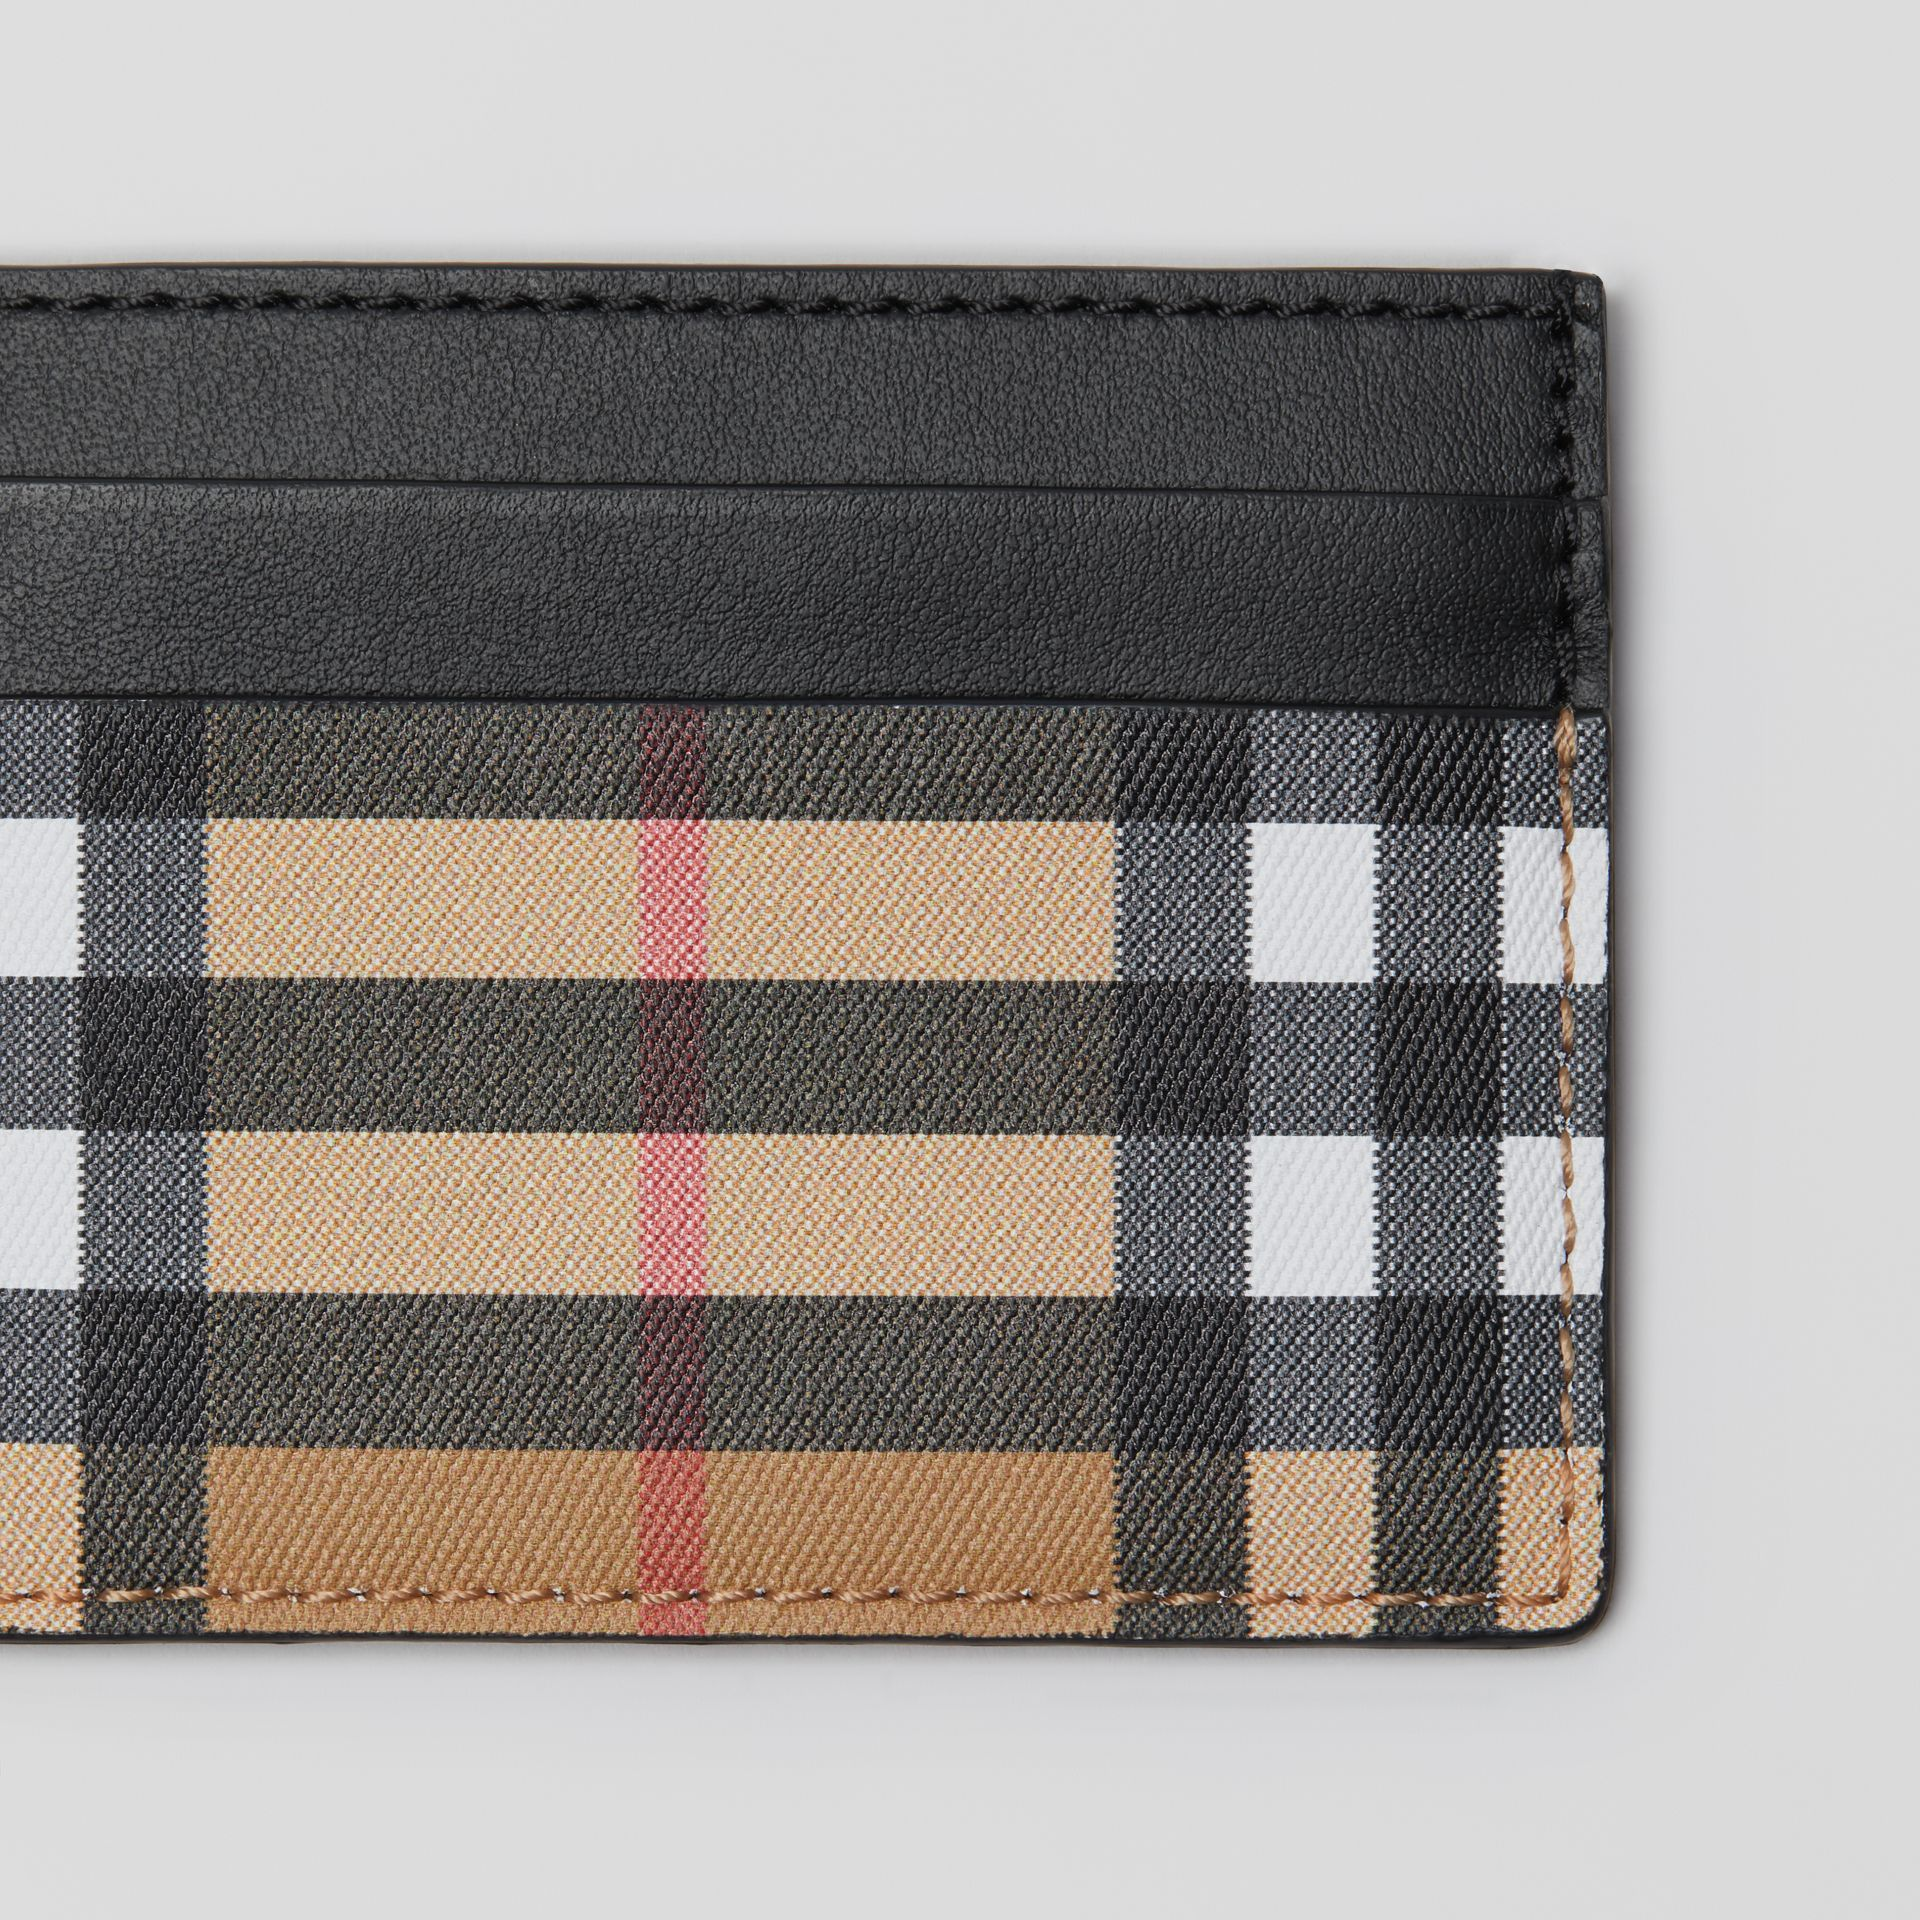 Vintage Check Leather Card Case in Black - Women | Burberry United Kingdom - gallery image 1